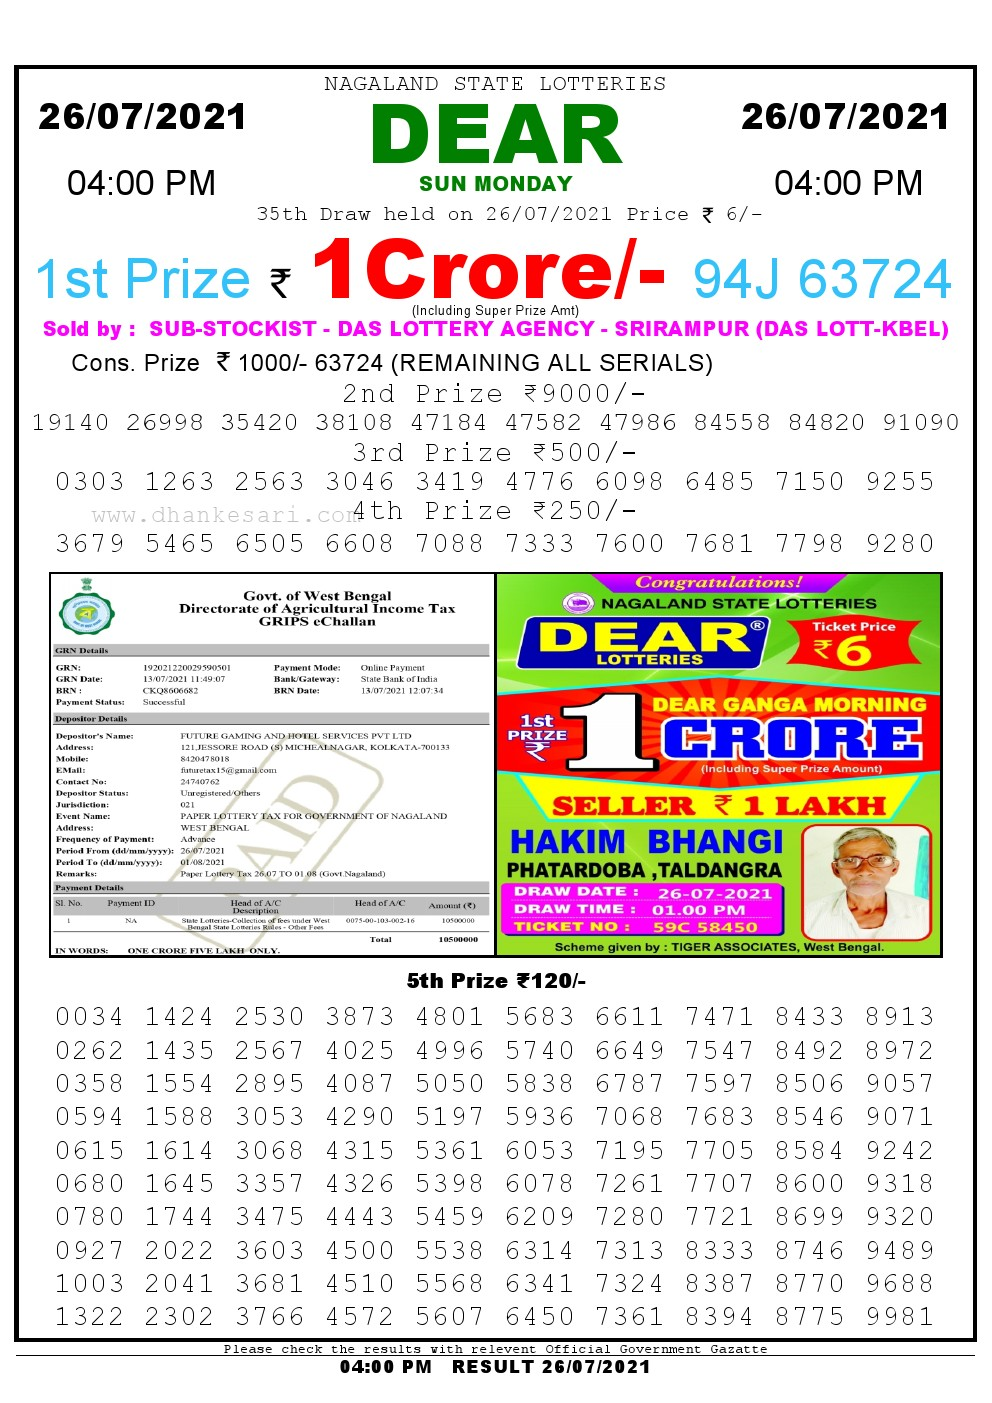 Dear Lottery Result Today 4pm 26/07/2021 Nagaland State lottery result pdf